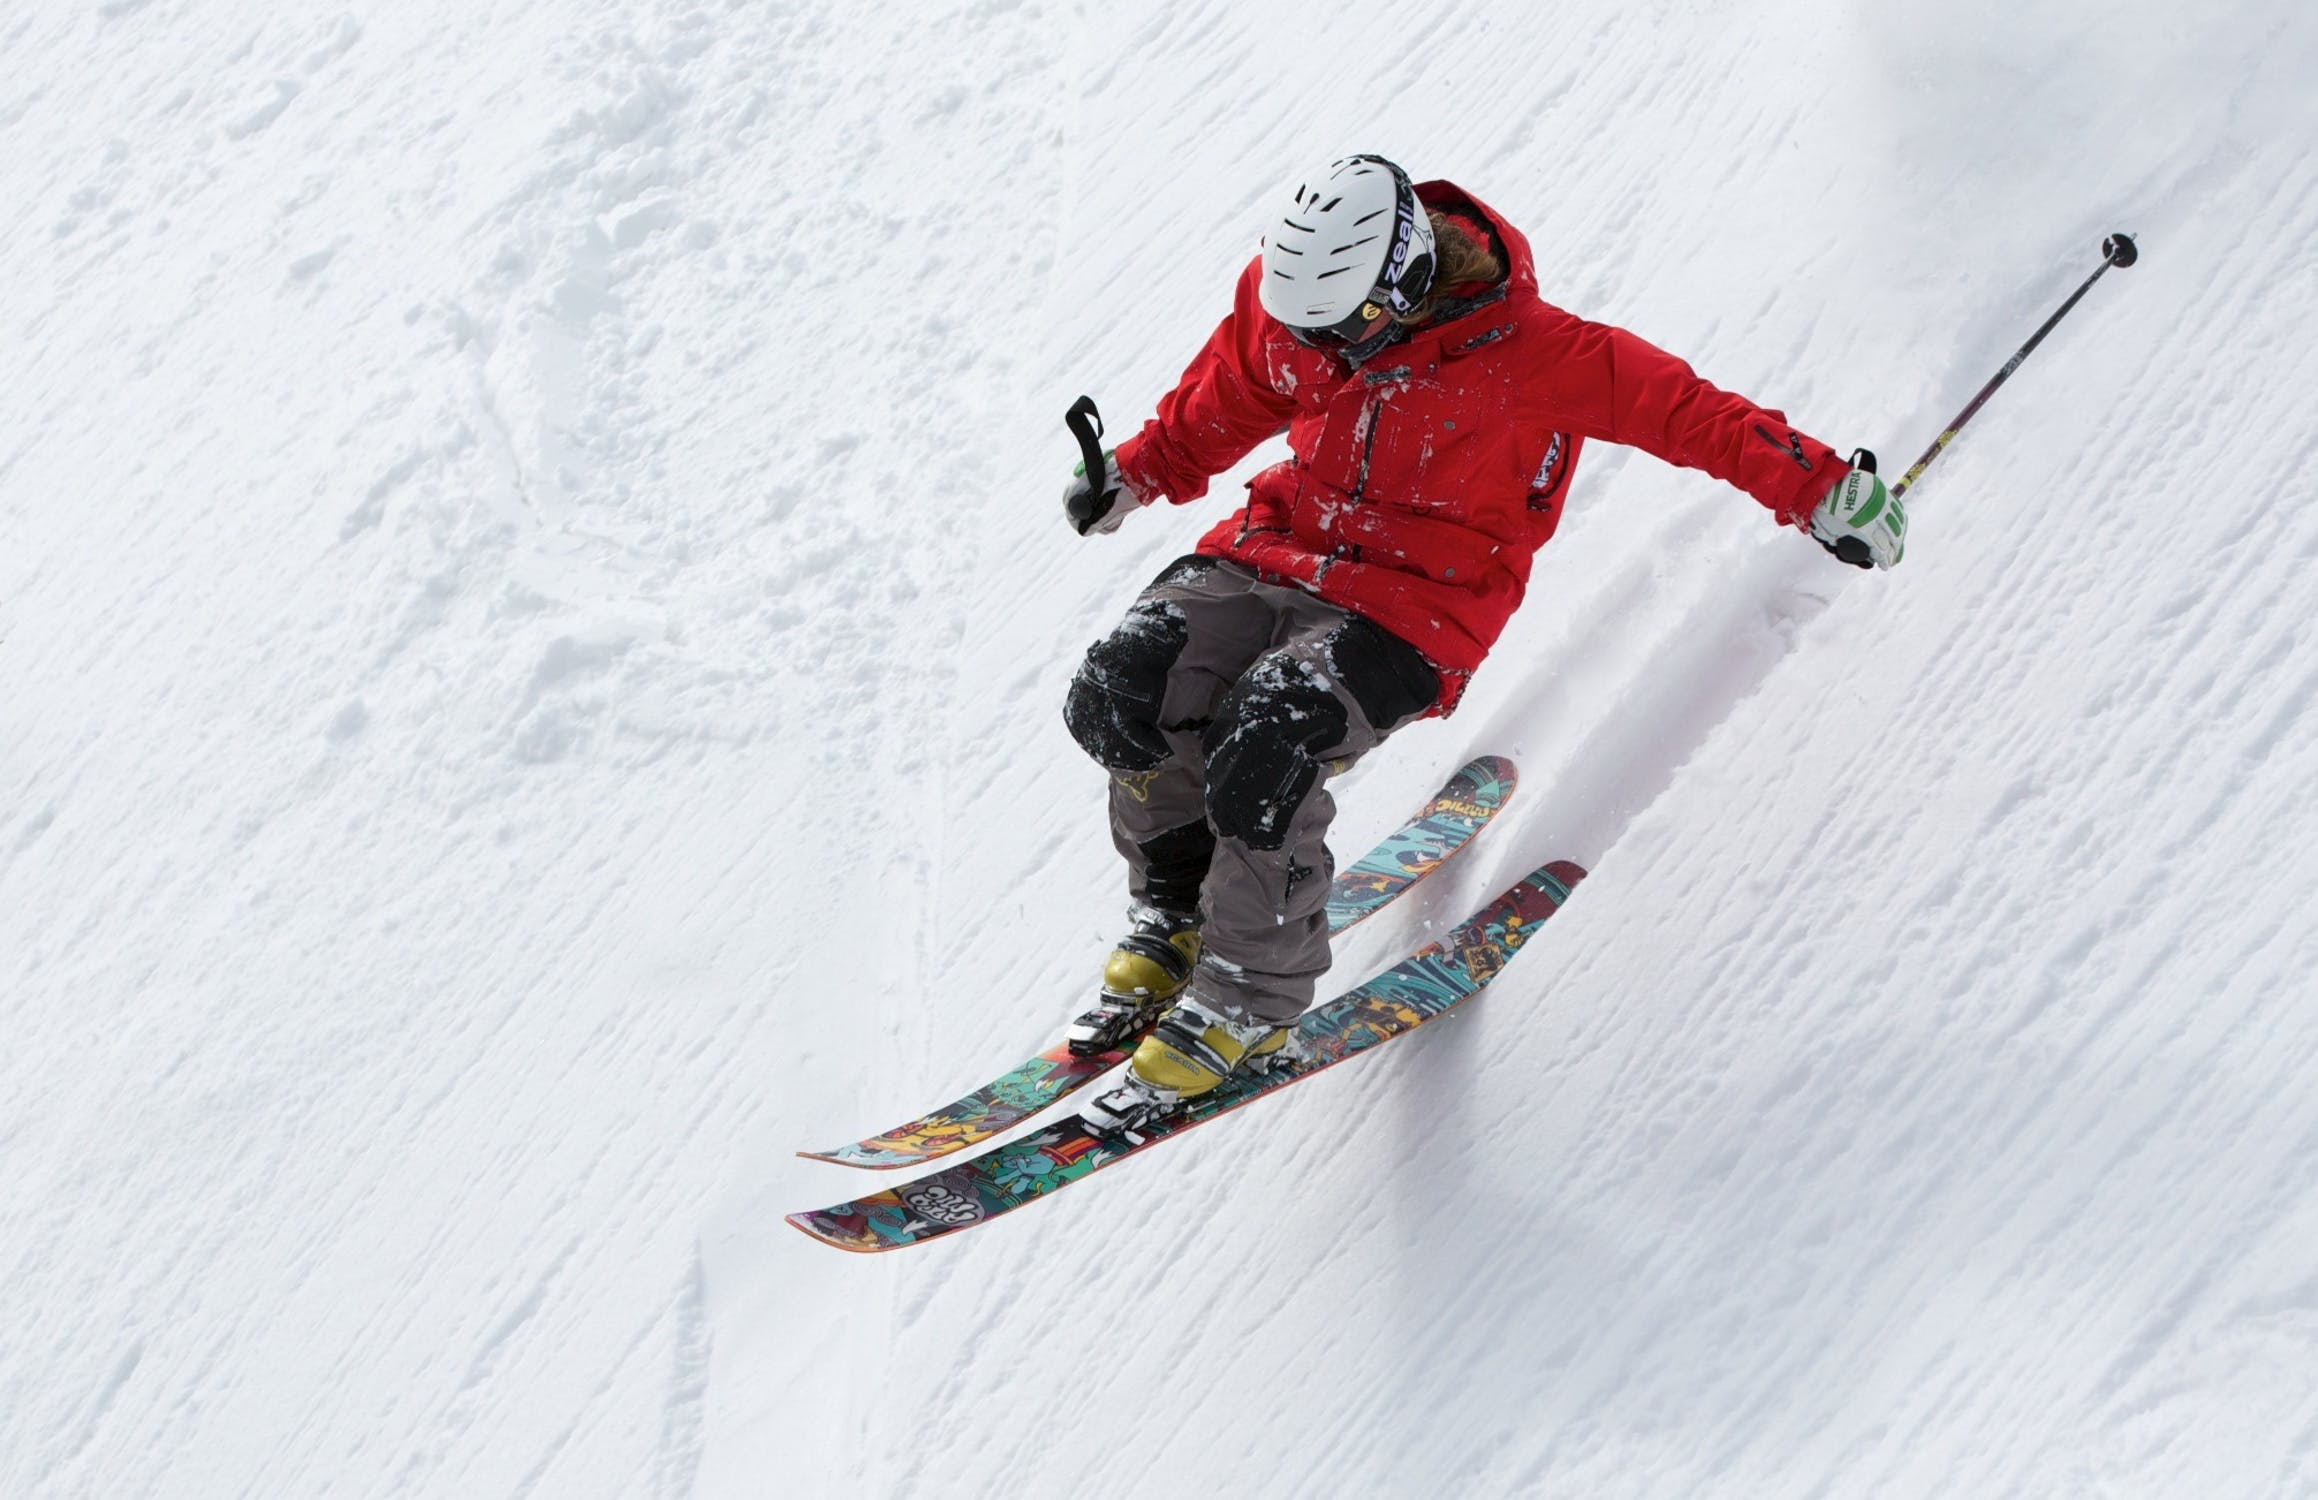 iGroup To Hit the Slopes- It's All Down Hill From Here!